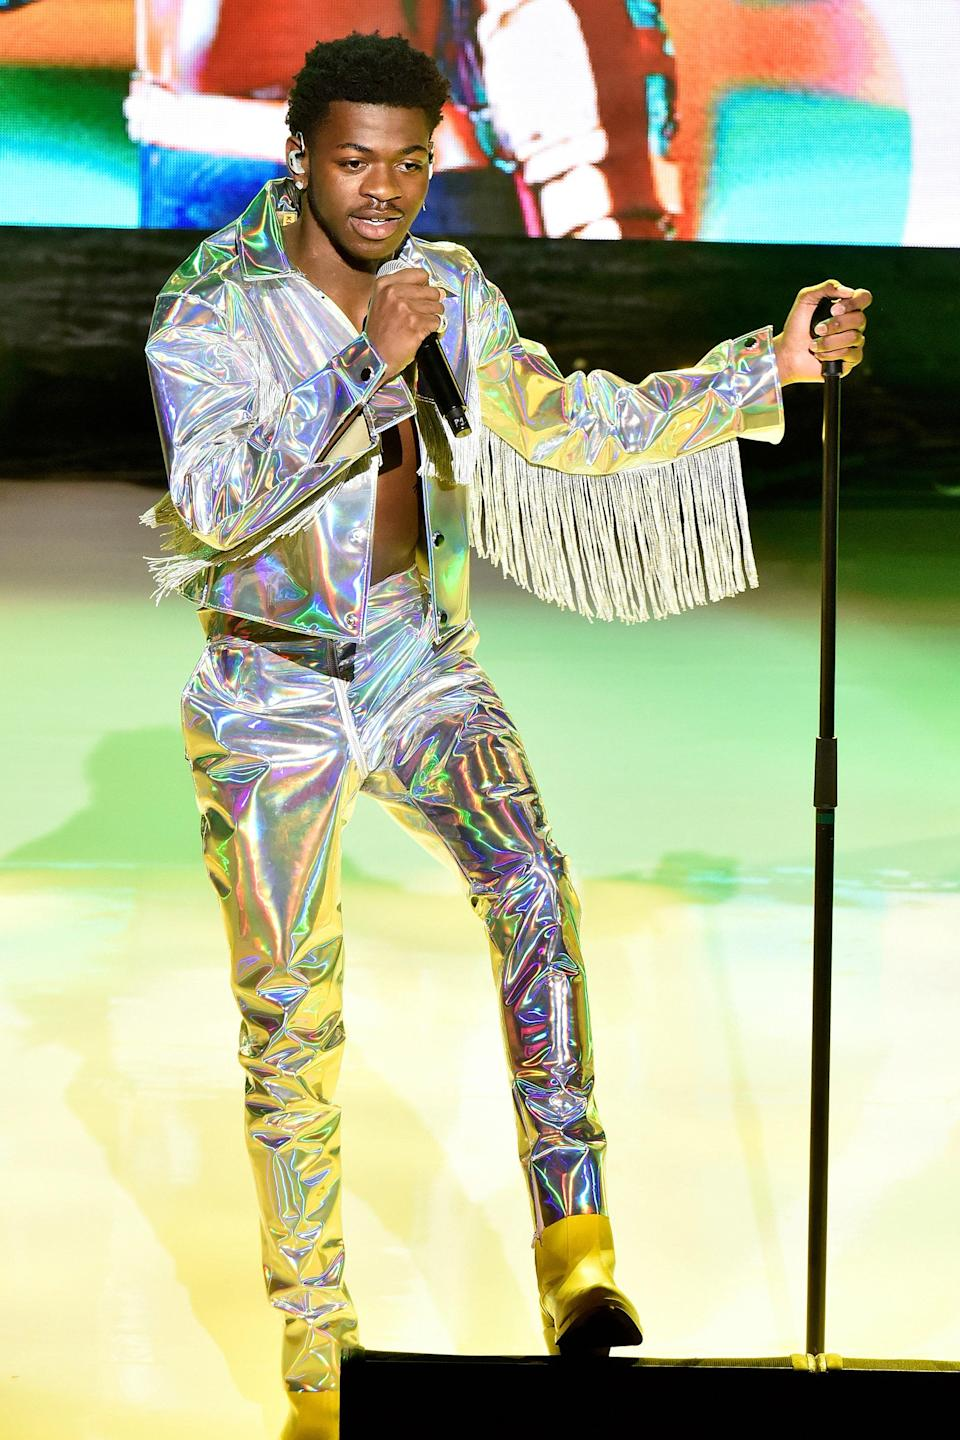 It takes a special kind of person to mix fringe with metallic, but he nailed it. (Of course.)